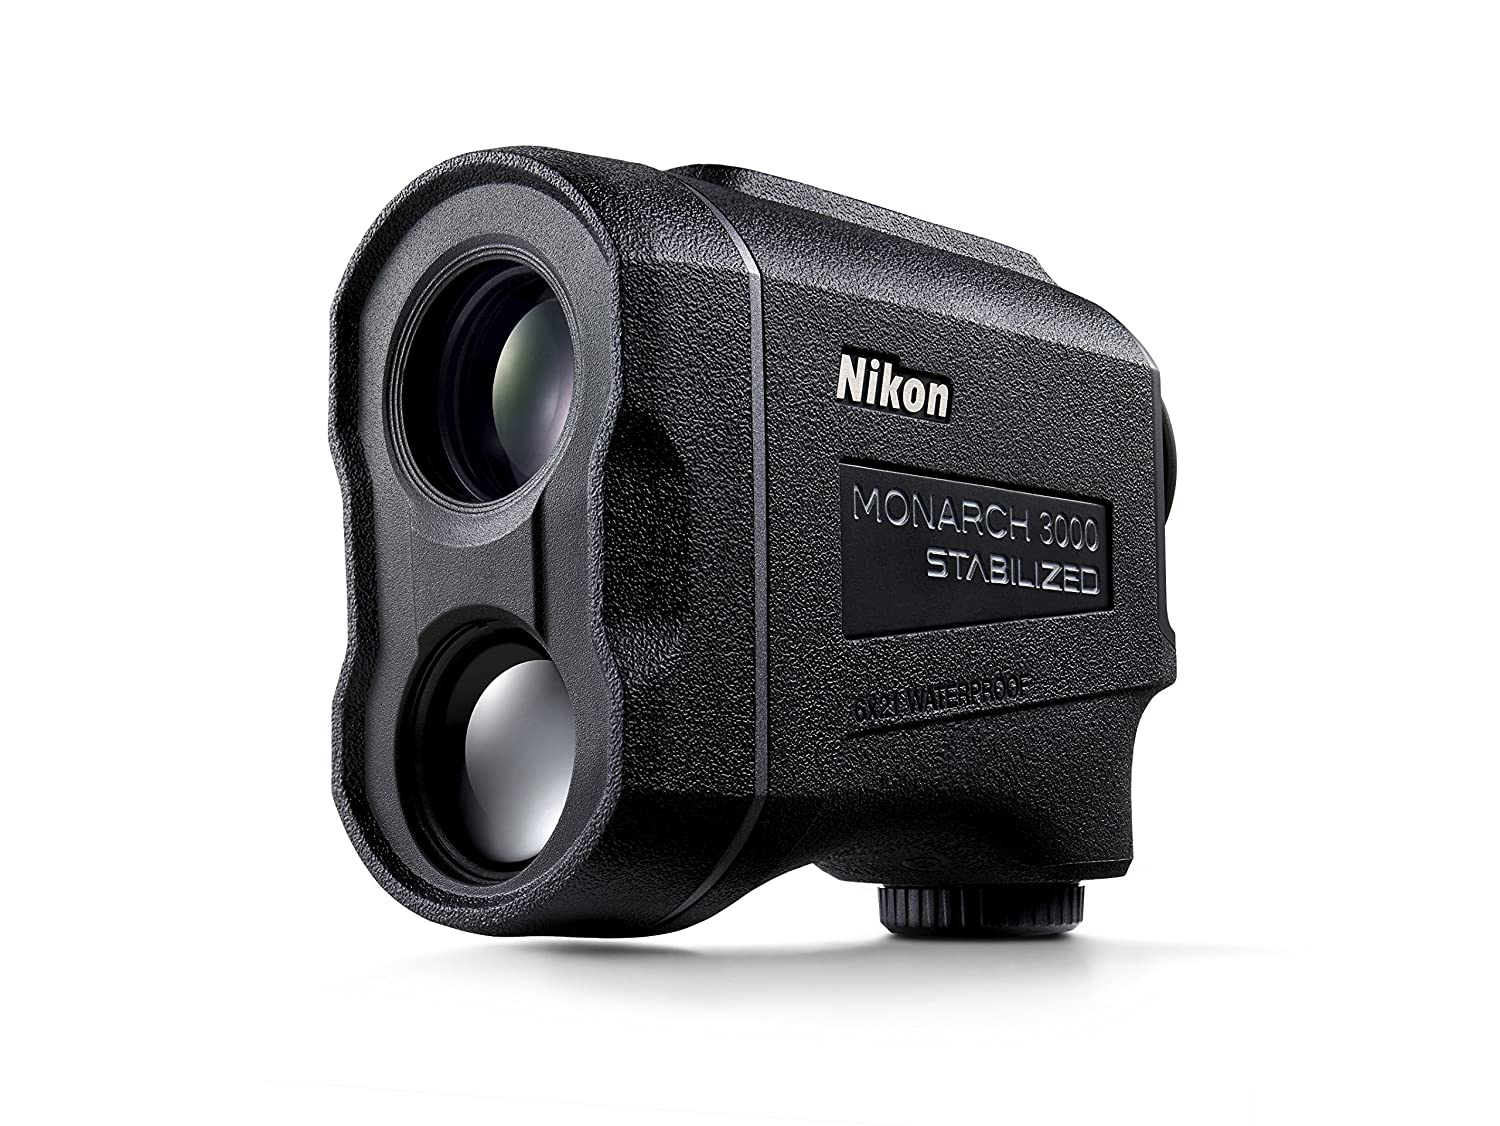 Nikon monarch 3000 stabilized laser entfernungsmesser: amazon.de: kamera